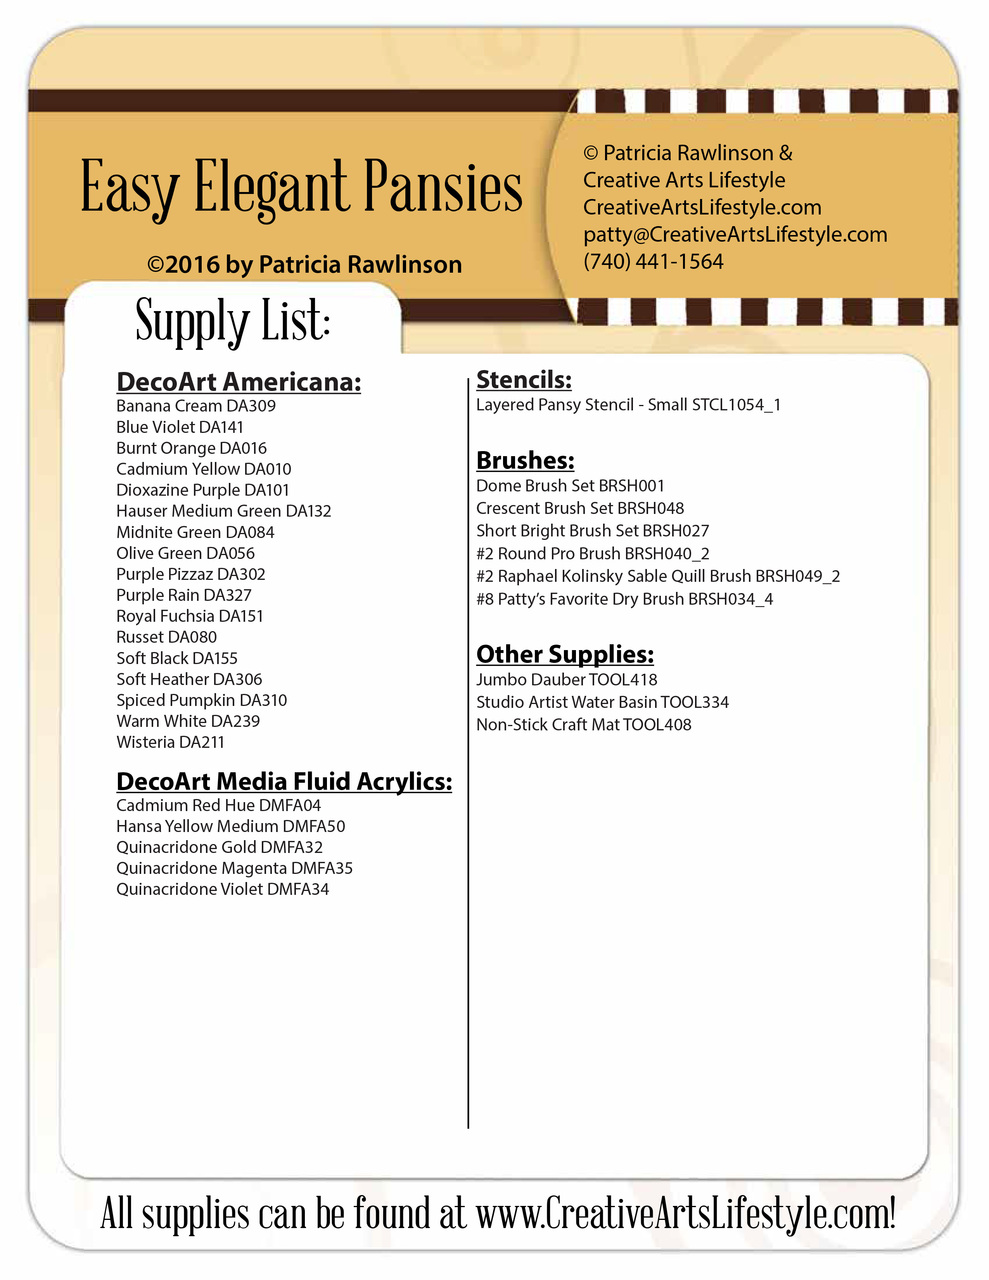 Easy Elegant Pansies DVD and Pattern Packet - Patricia Rawlinson